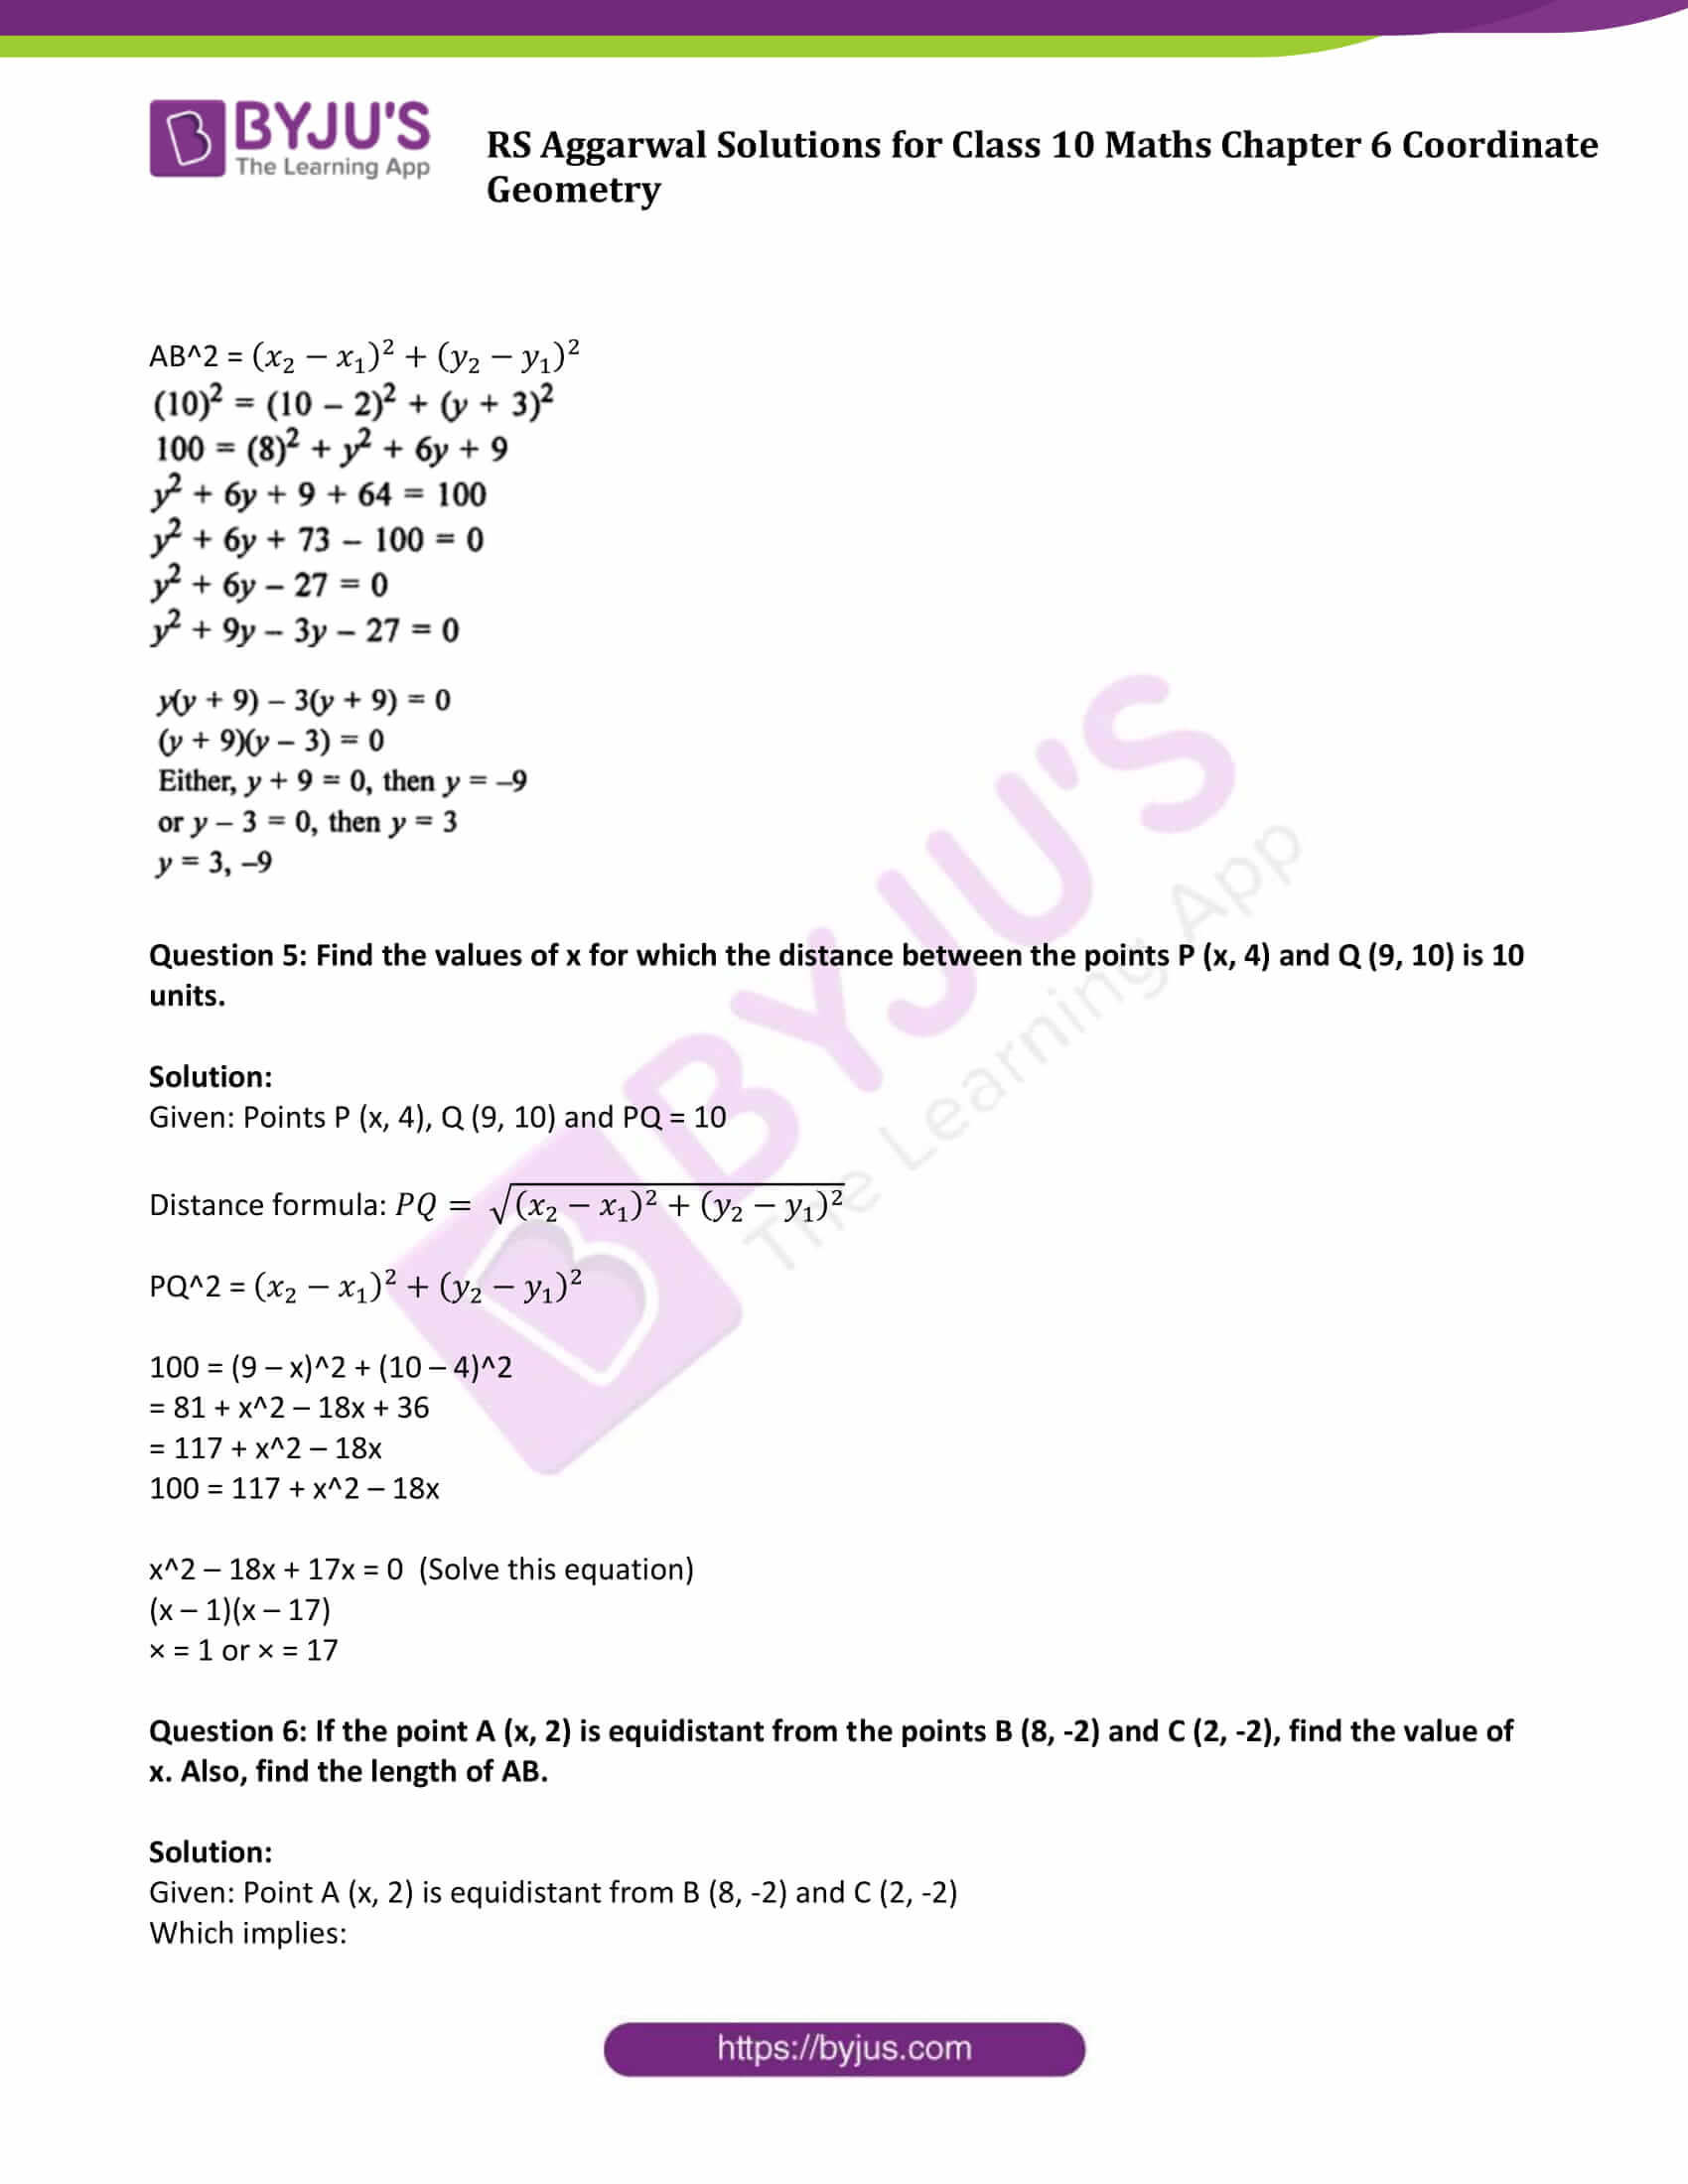 RS Aggarwal Sol class 10 Maths Chapter 6A